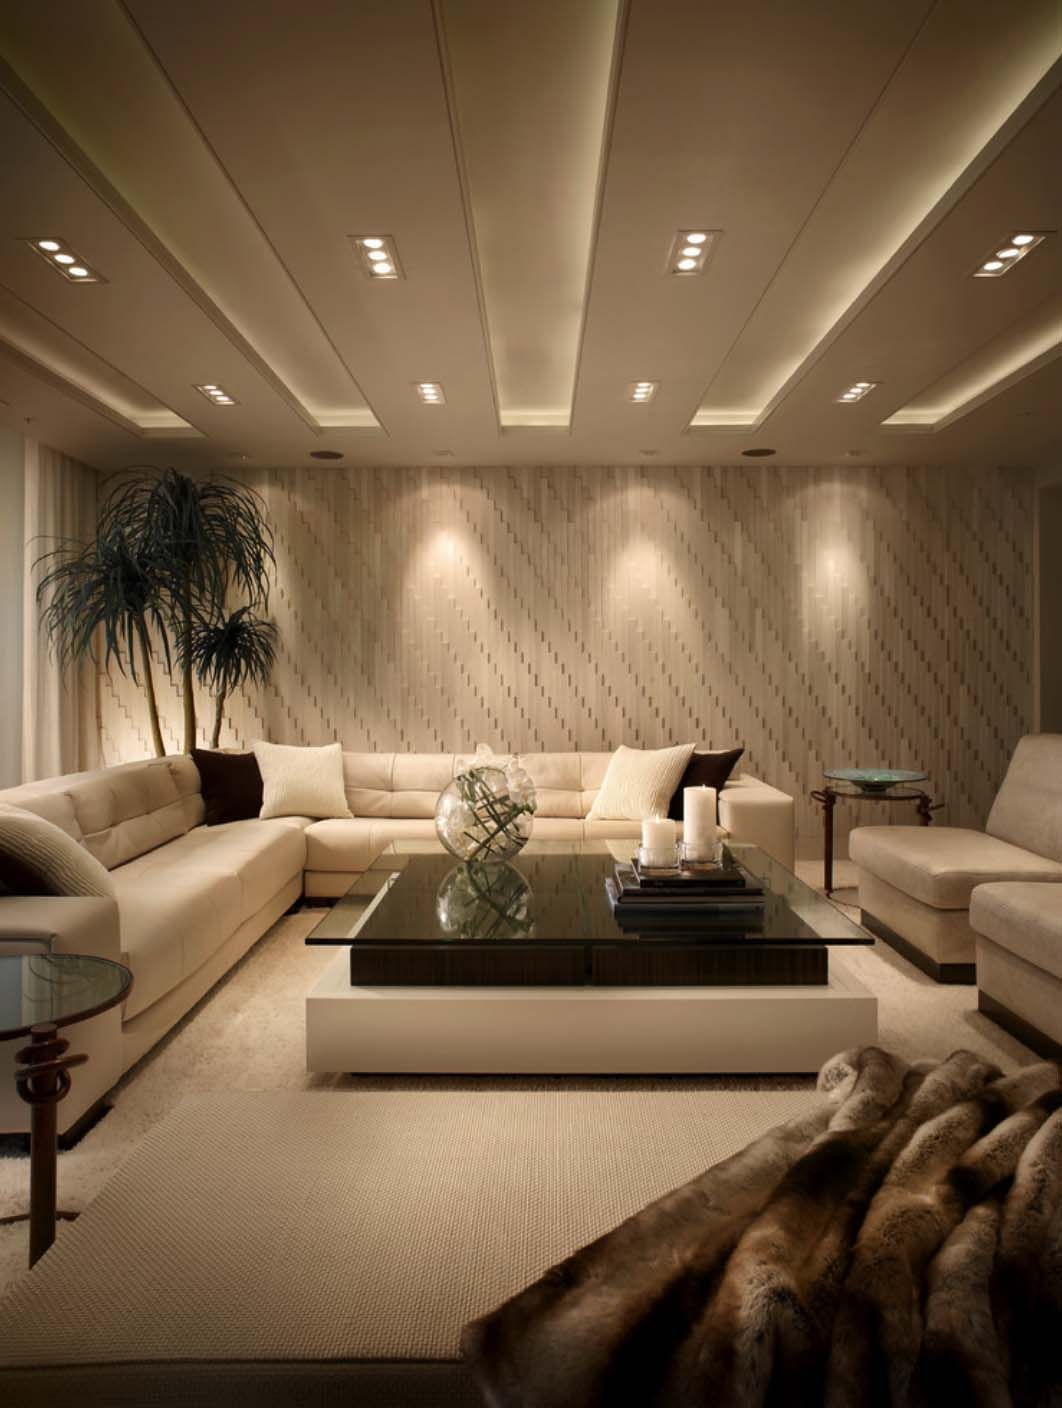 Impeccable Design Details In Luxurious Boca Raton Residence Living Room Design Modern Luxury Living Room Elegant Living Room